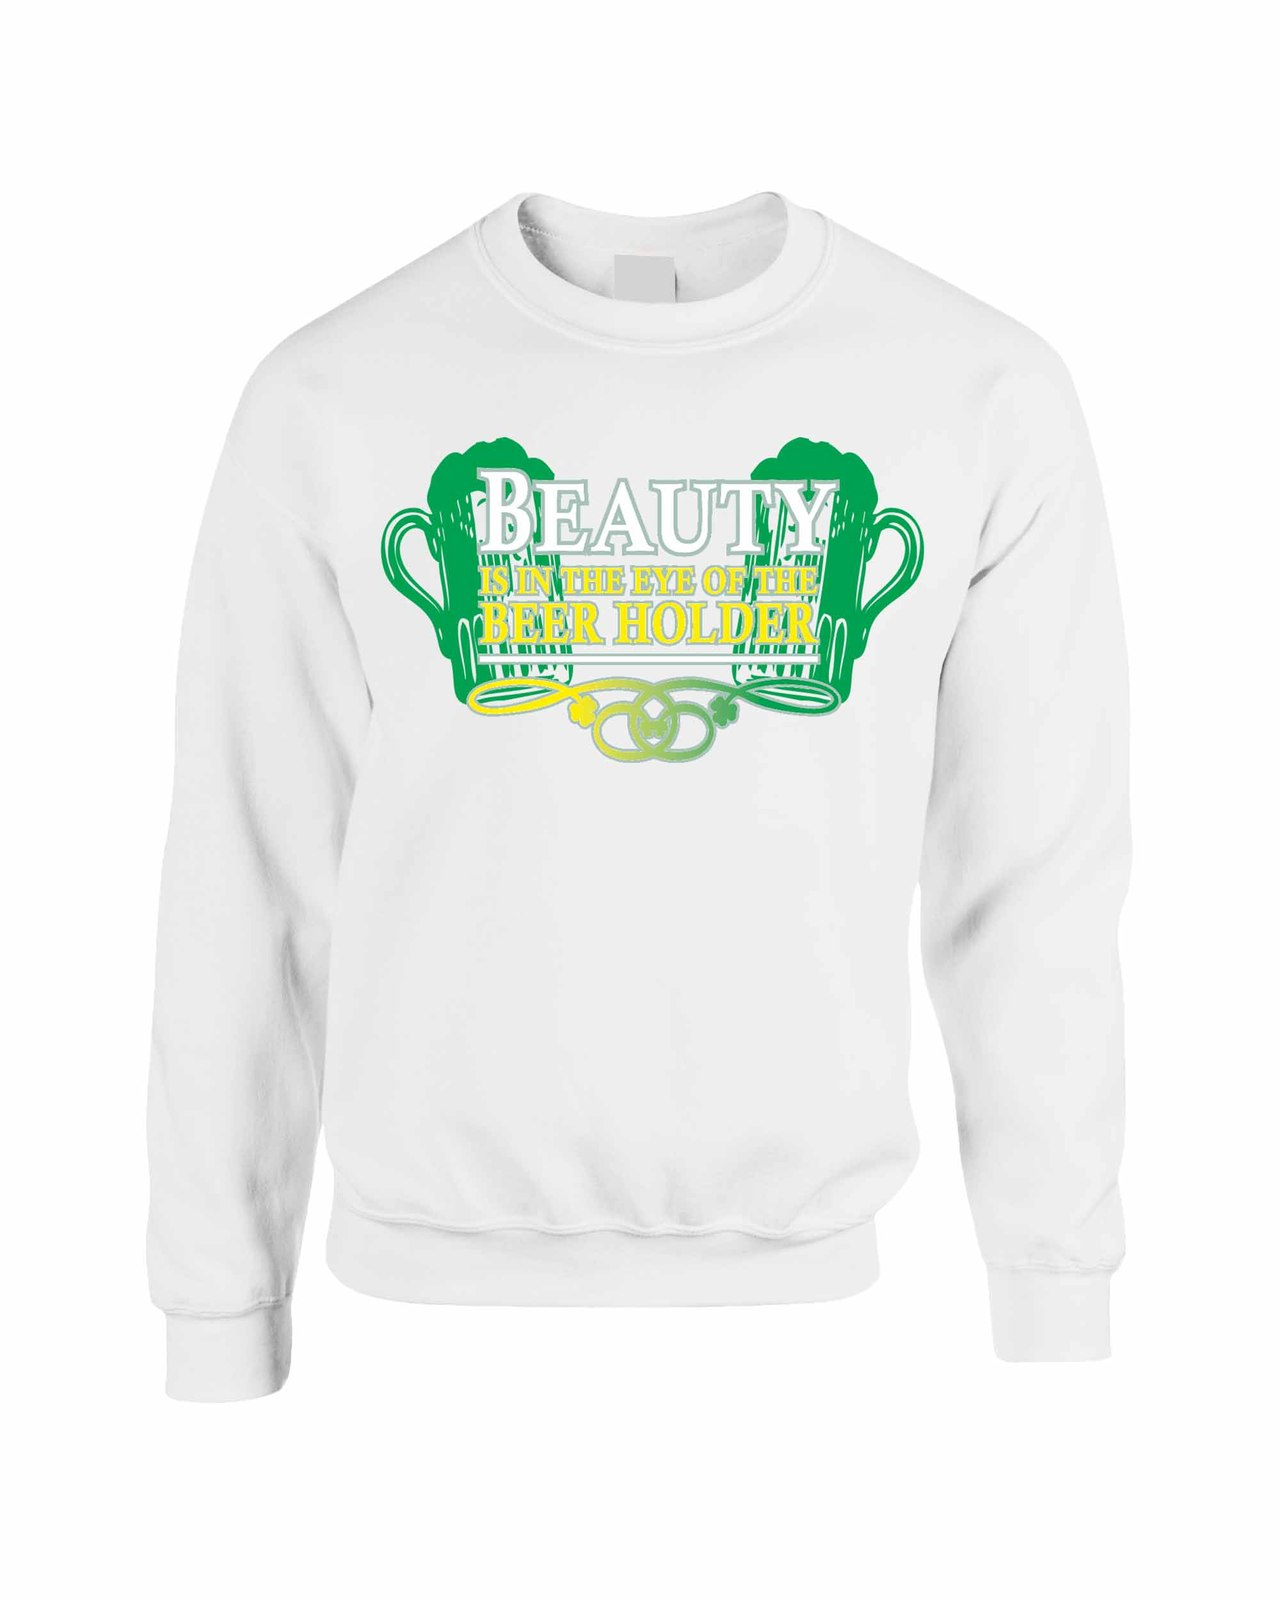 Unisex Crewneck Sweatshirt Saint Patrick's Day Beauty Beer Holder Irish Shirt